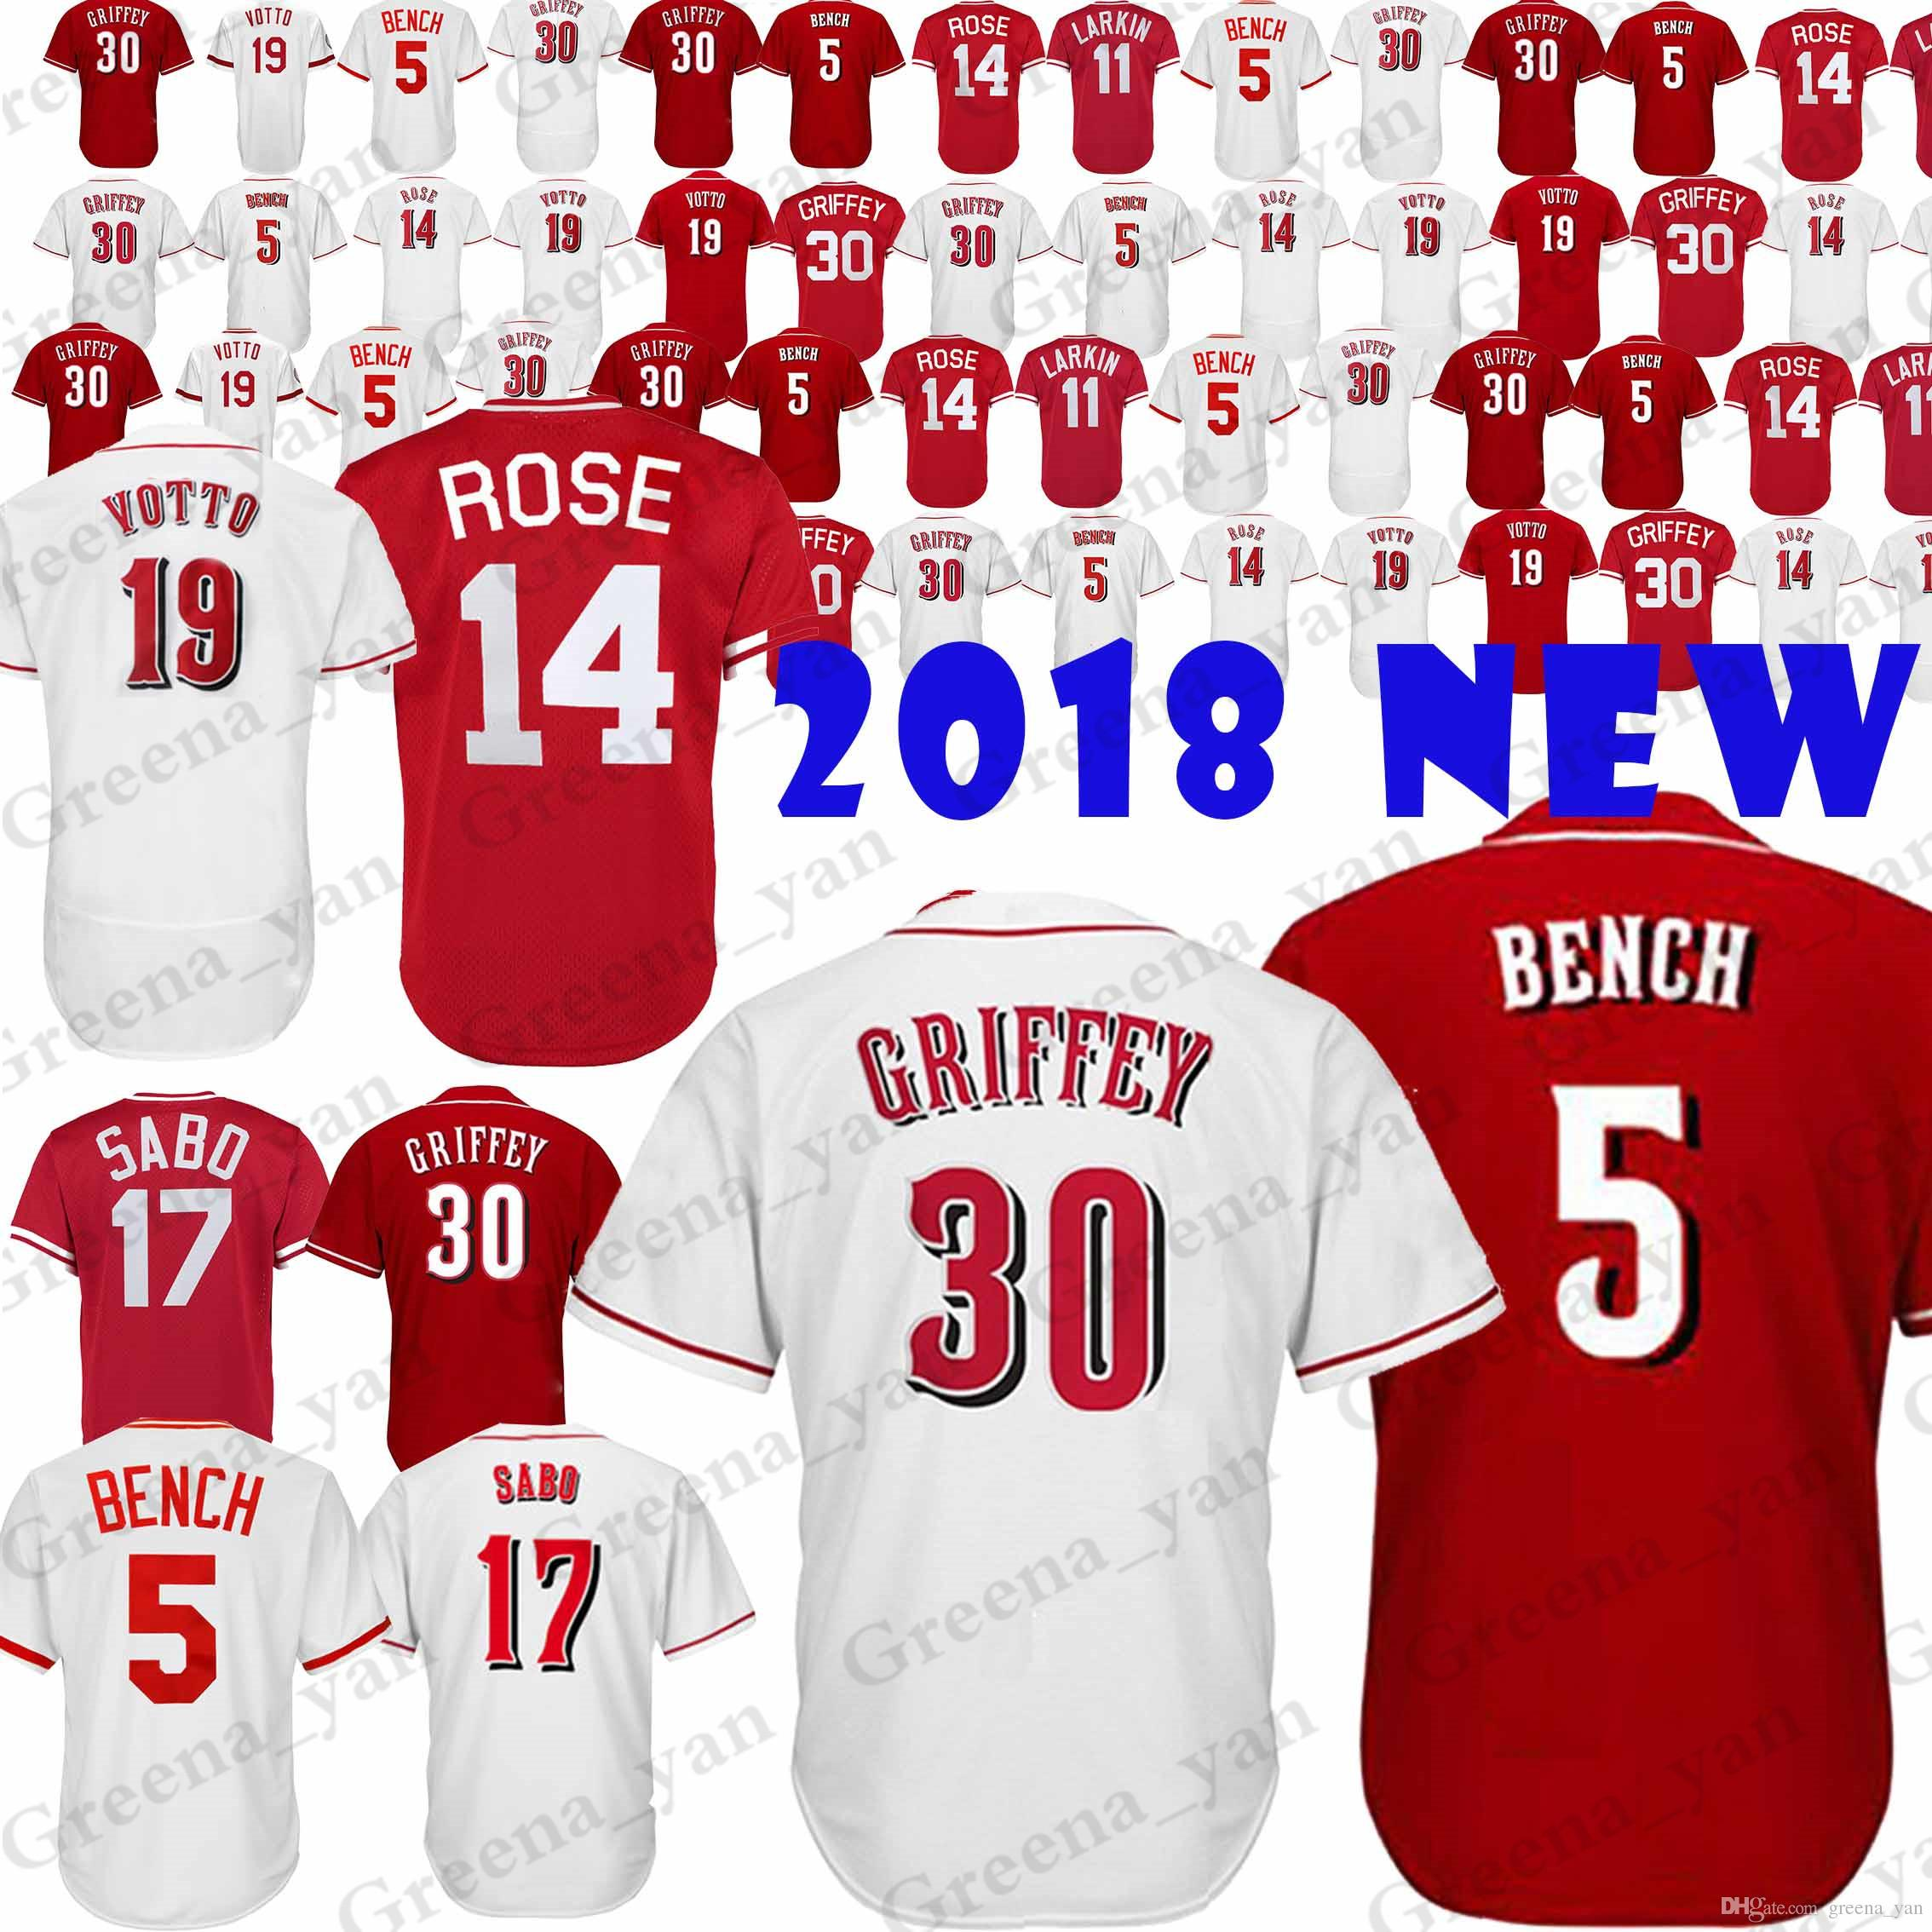 big sale 38f9d f0a03 TOP Cincinnati Reds Baseball Jersey 5 Johnny Benc 11 Barry Larkin 17 Chris  Sabo 19 Joey Votto 14 Pete Rose Jerseys High-quality